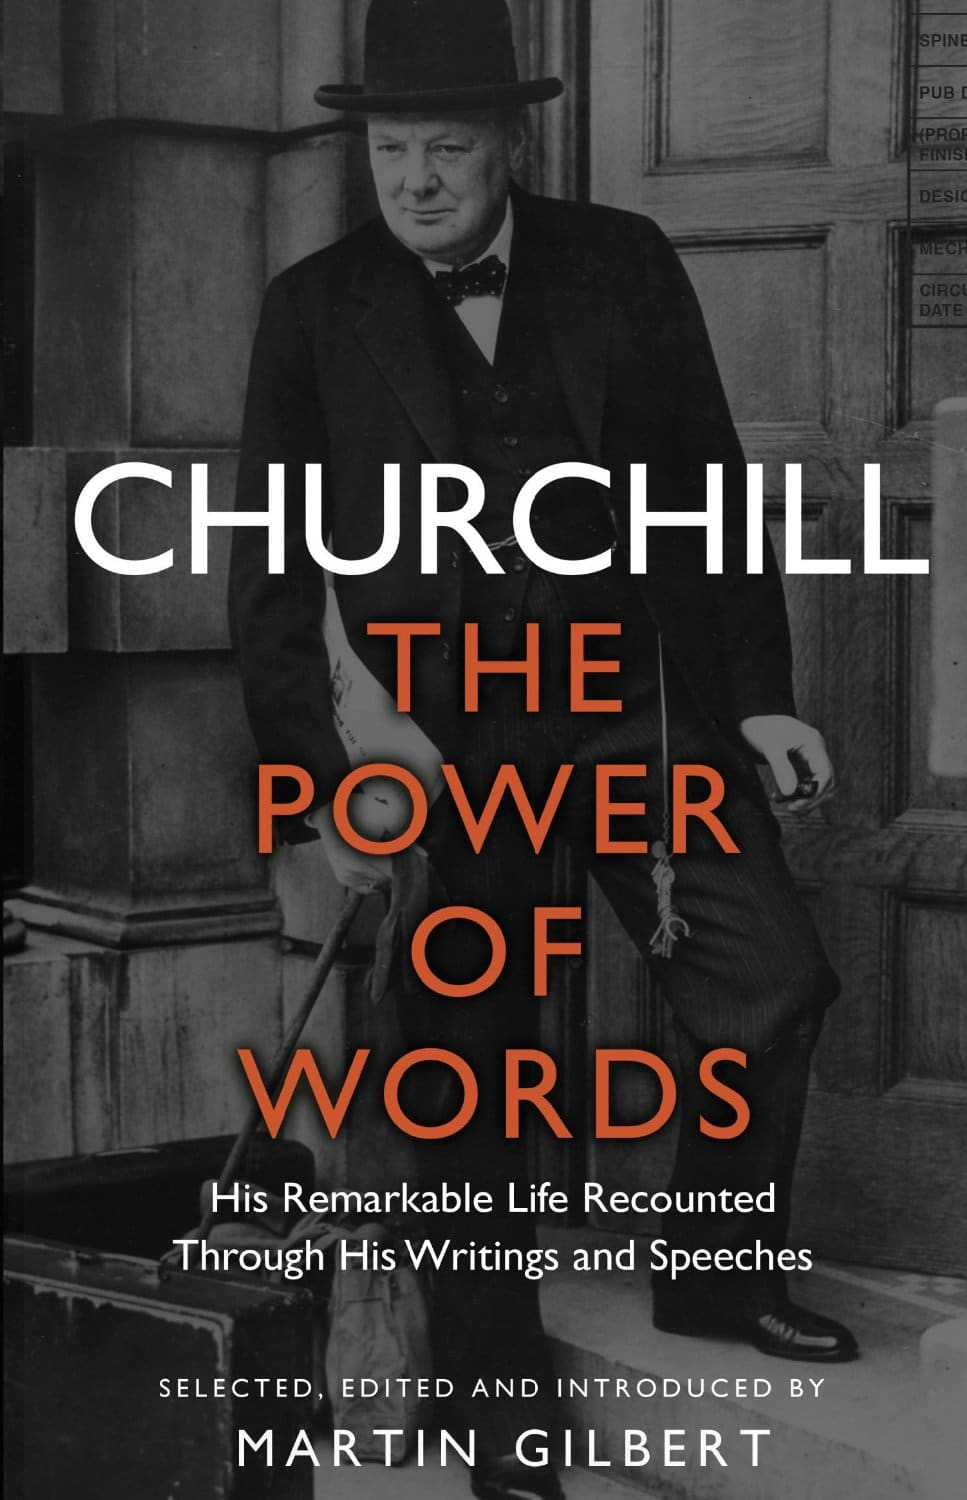 Churchill The Power of Words - Churchill: The Power of Words